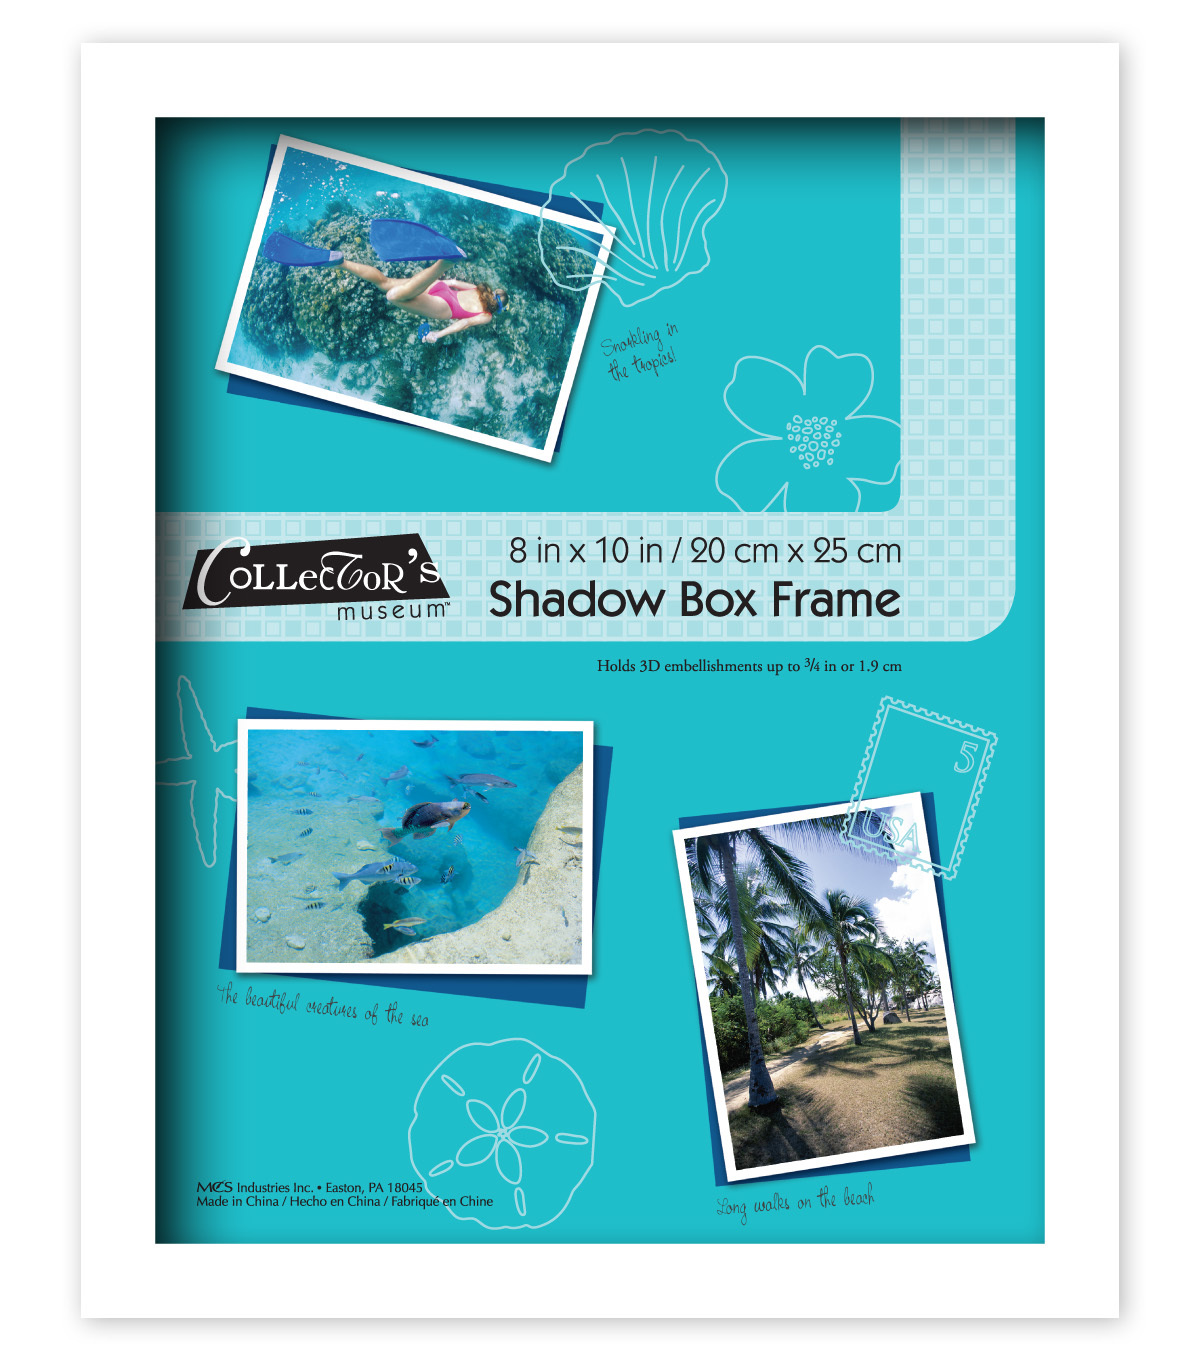 Collector\u0027s Museum Shadowbox Frame 8x10-Omega White